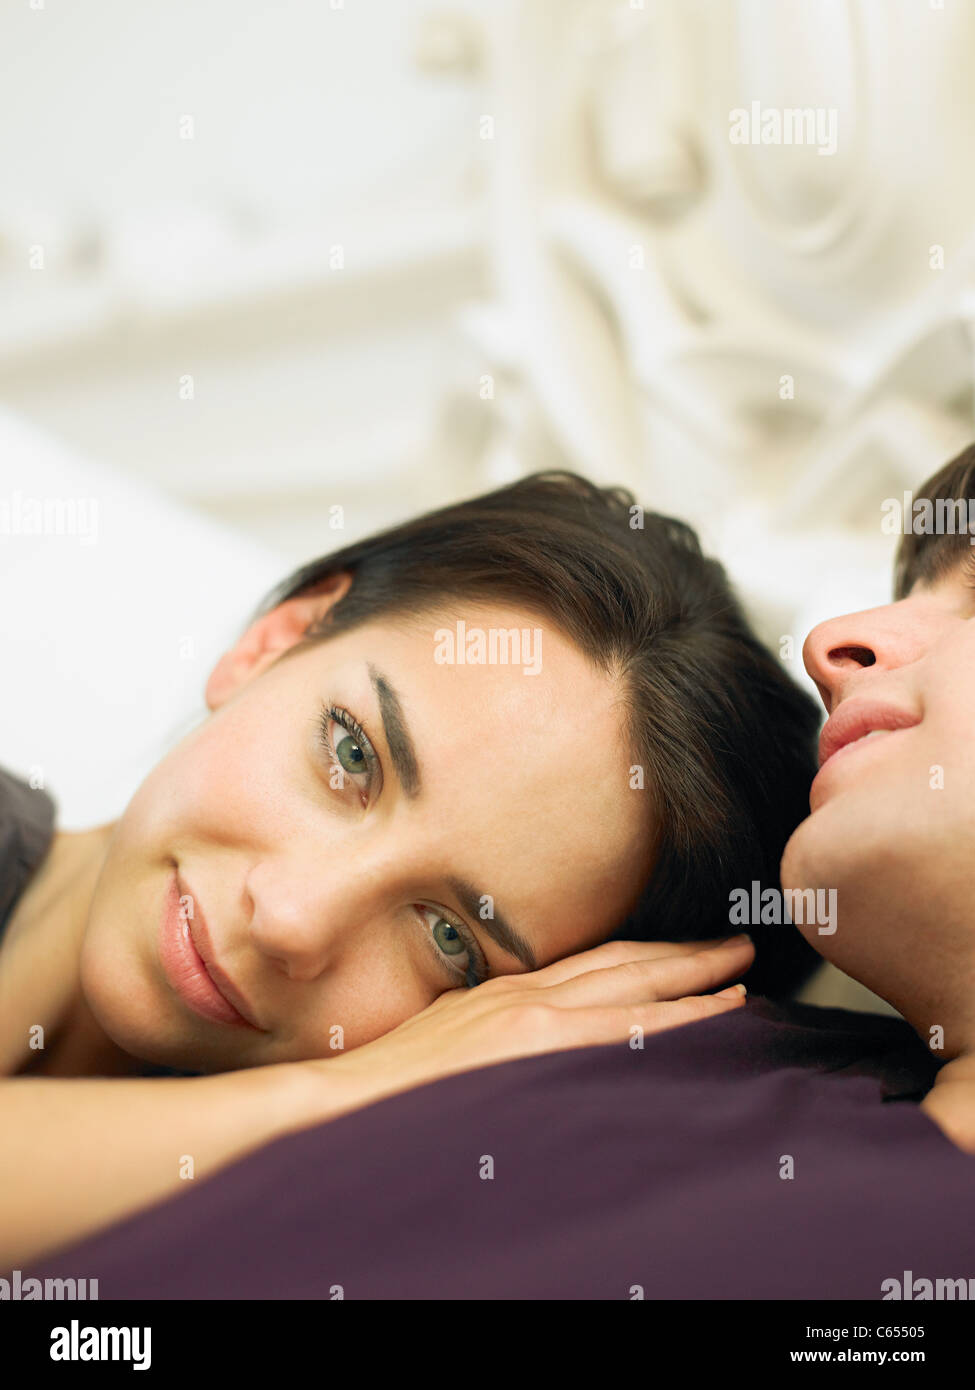 Young couple lying in bed, woman's head on man's shoulder - Stock Image